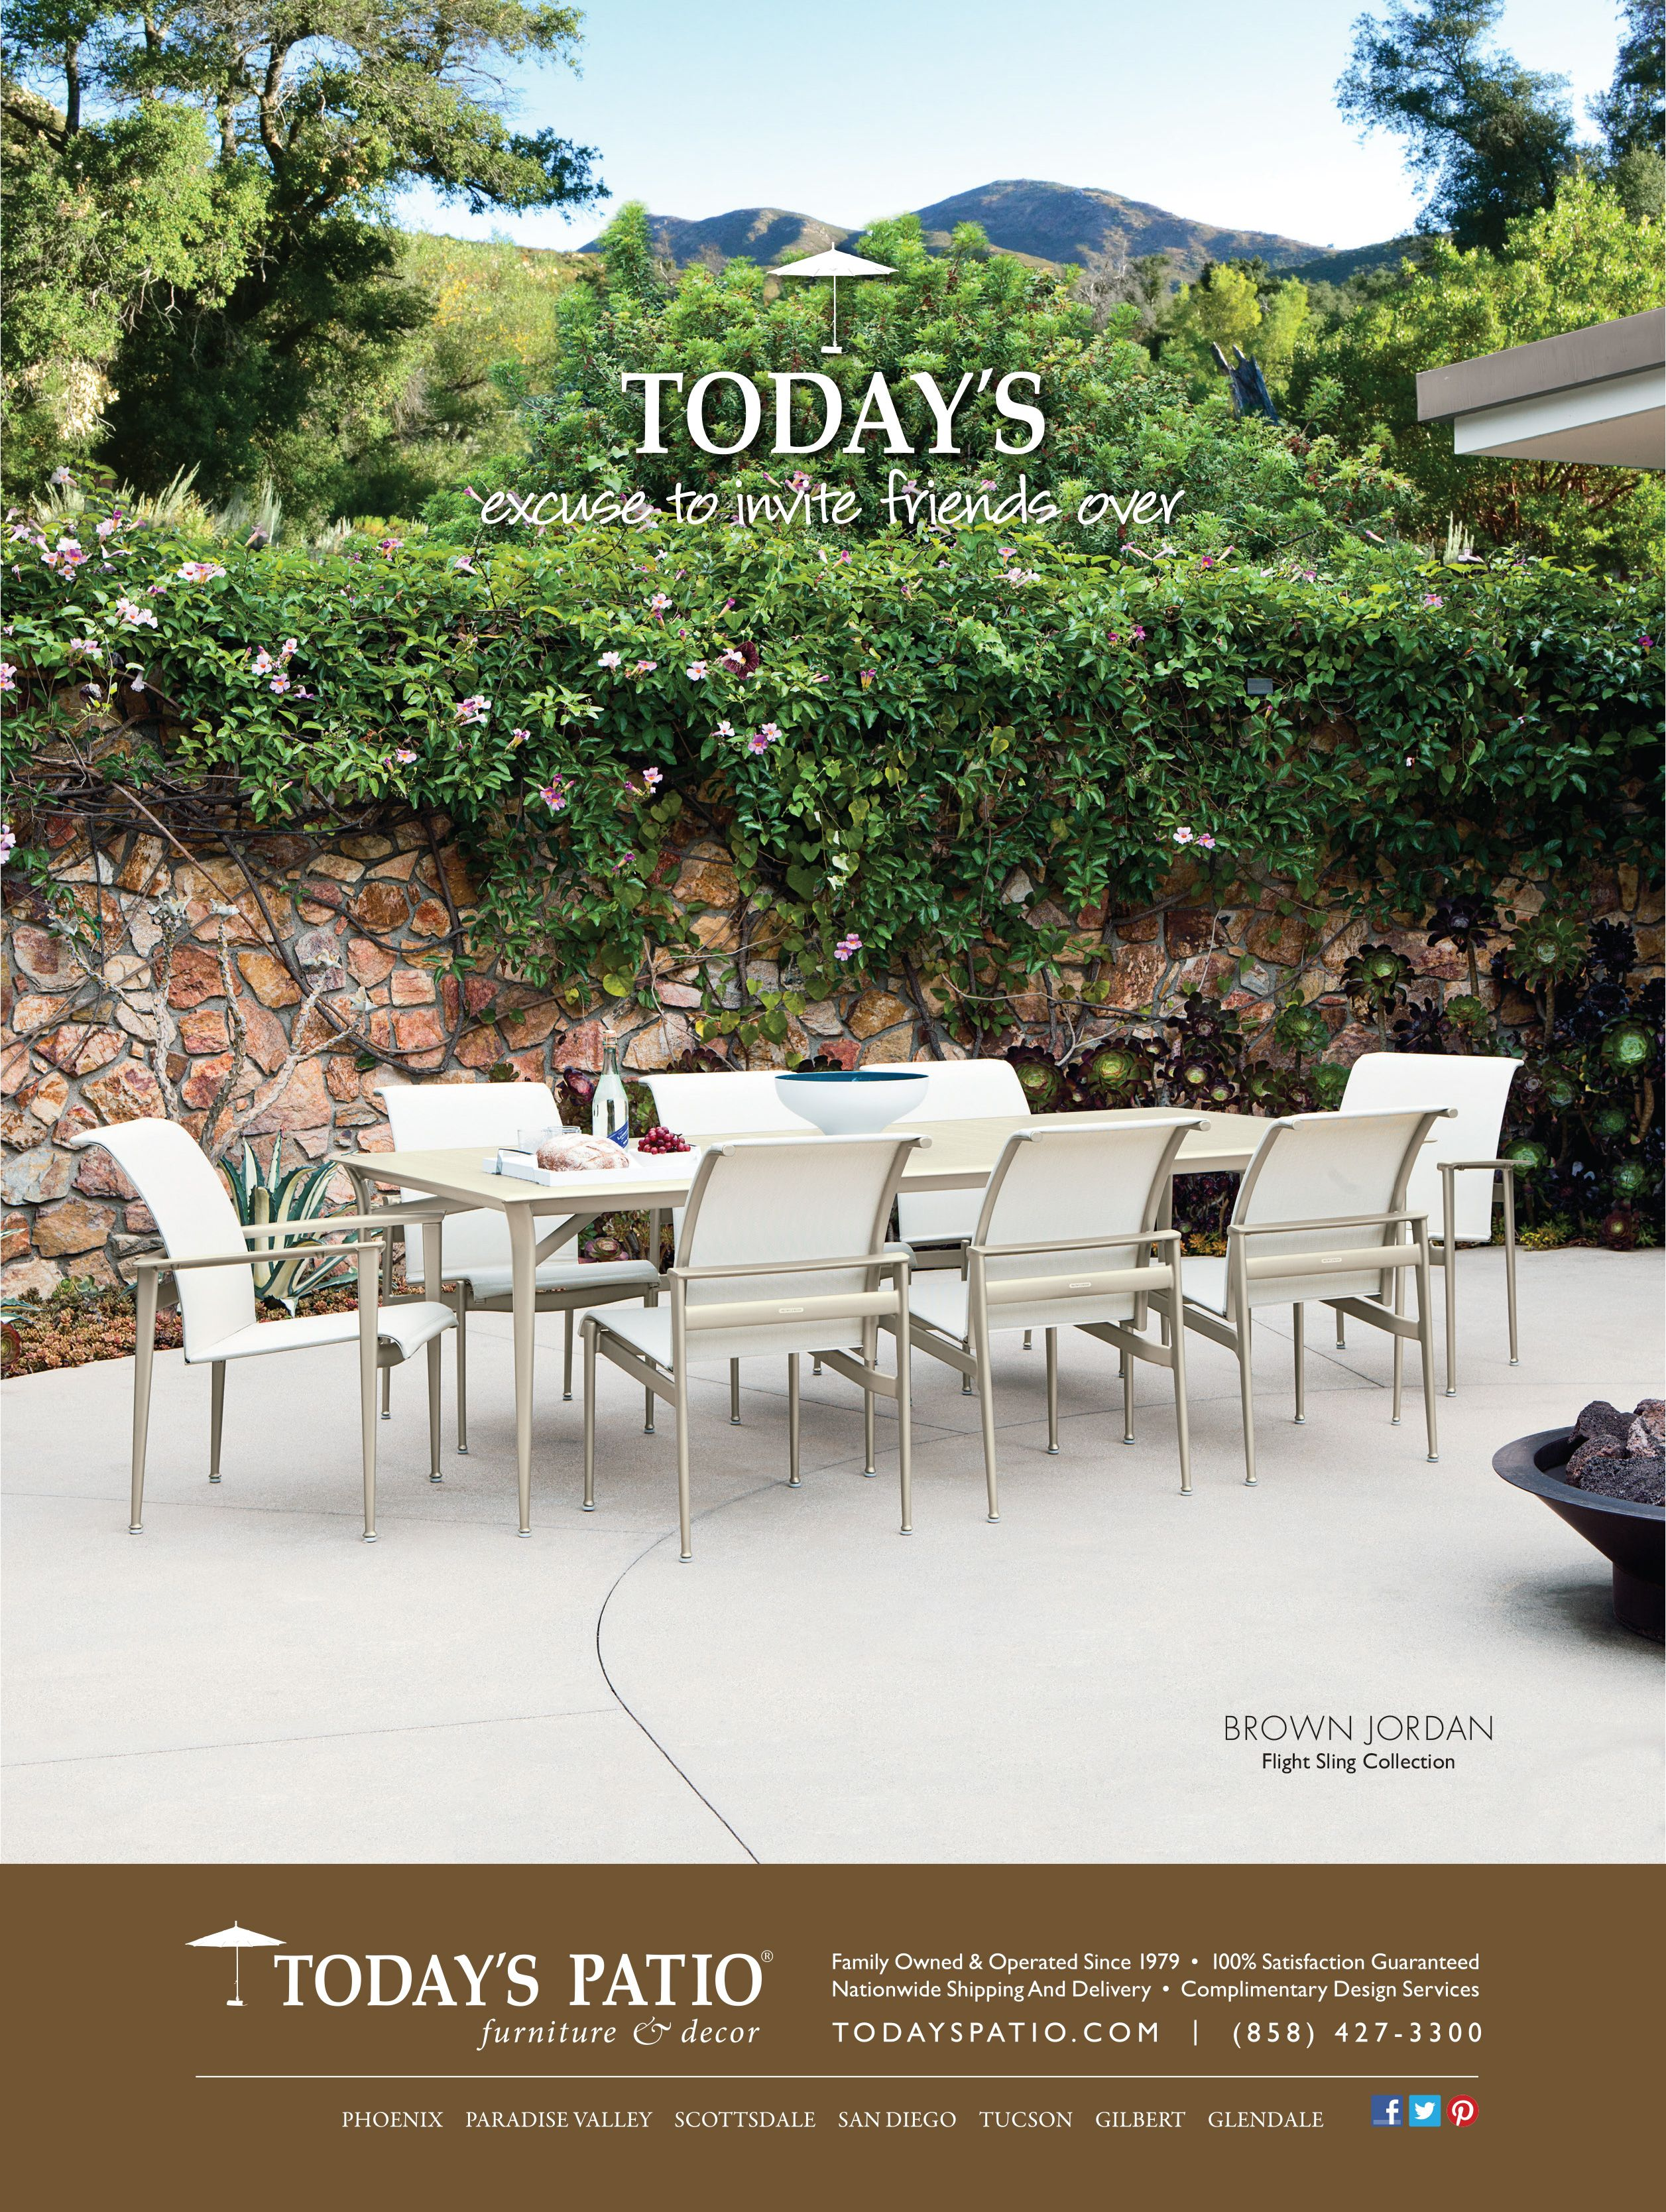 Brown Jordan Flight Sling Collection Today S Patio Magazine Ad Patio Furniture Collection Outdoor Patio Couch Modern Outdoor Patio